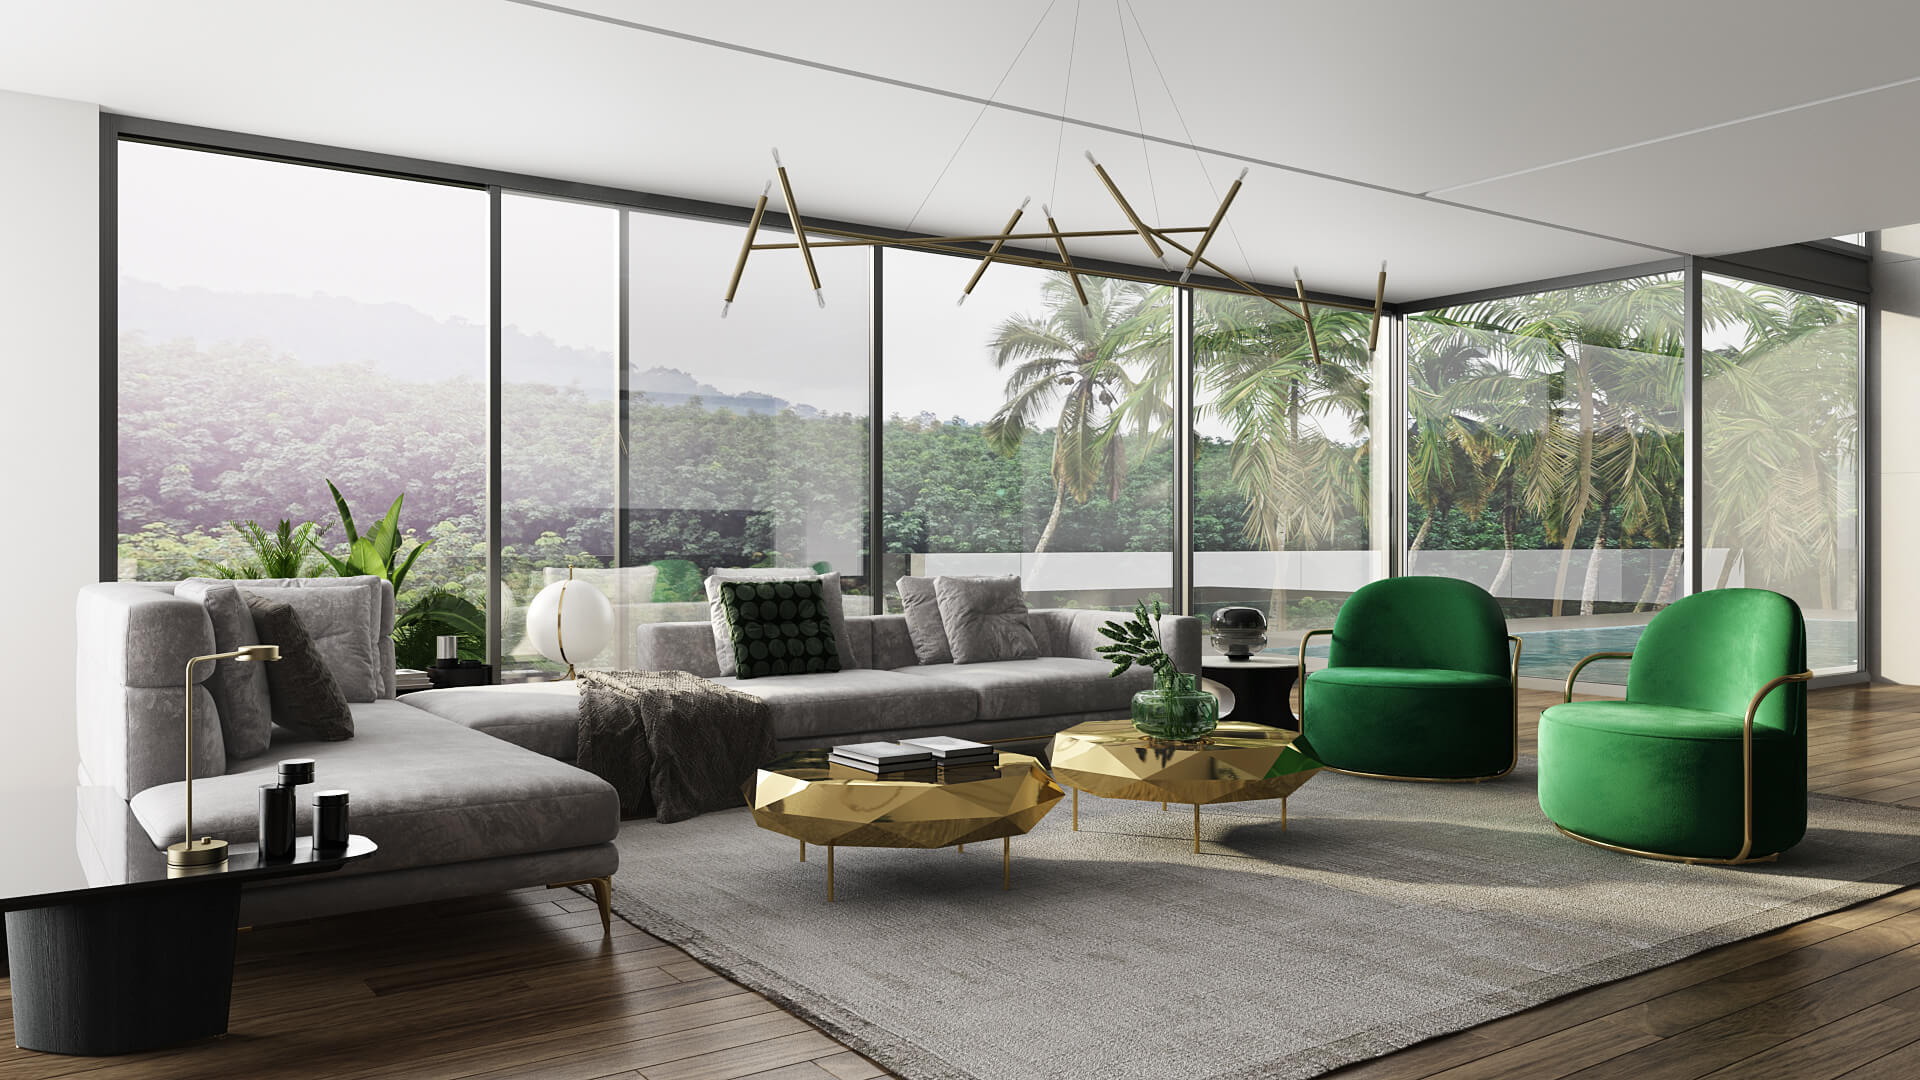 3D Visualization of a Gorgeous Room Design